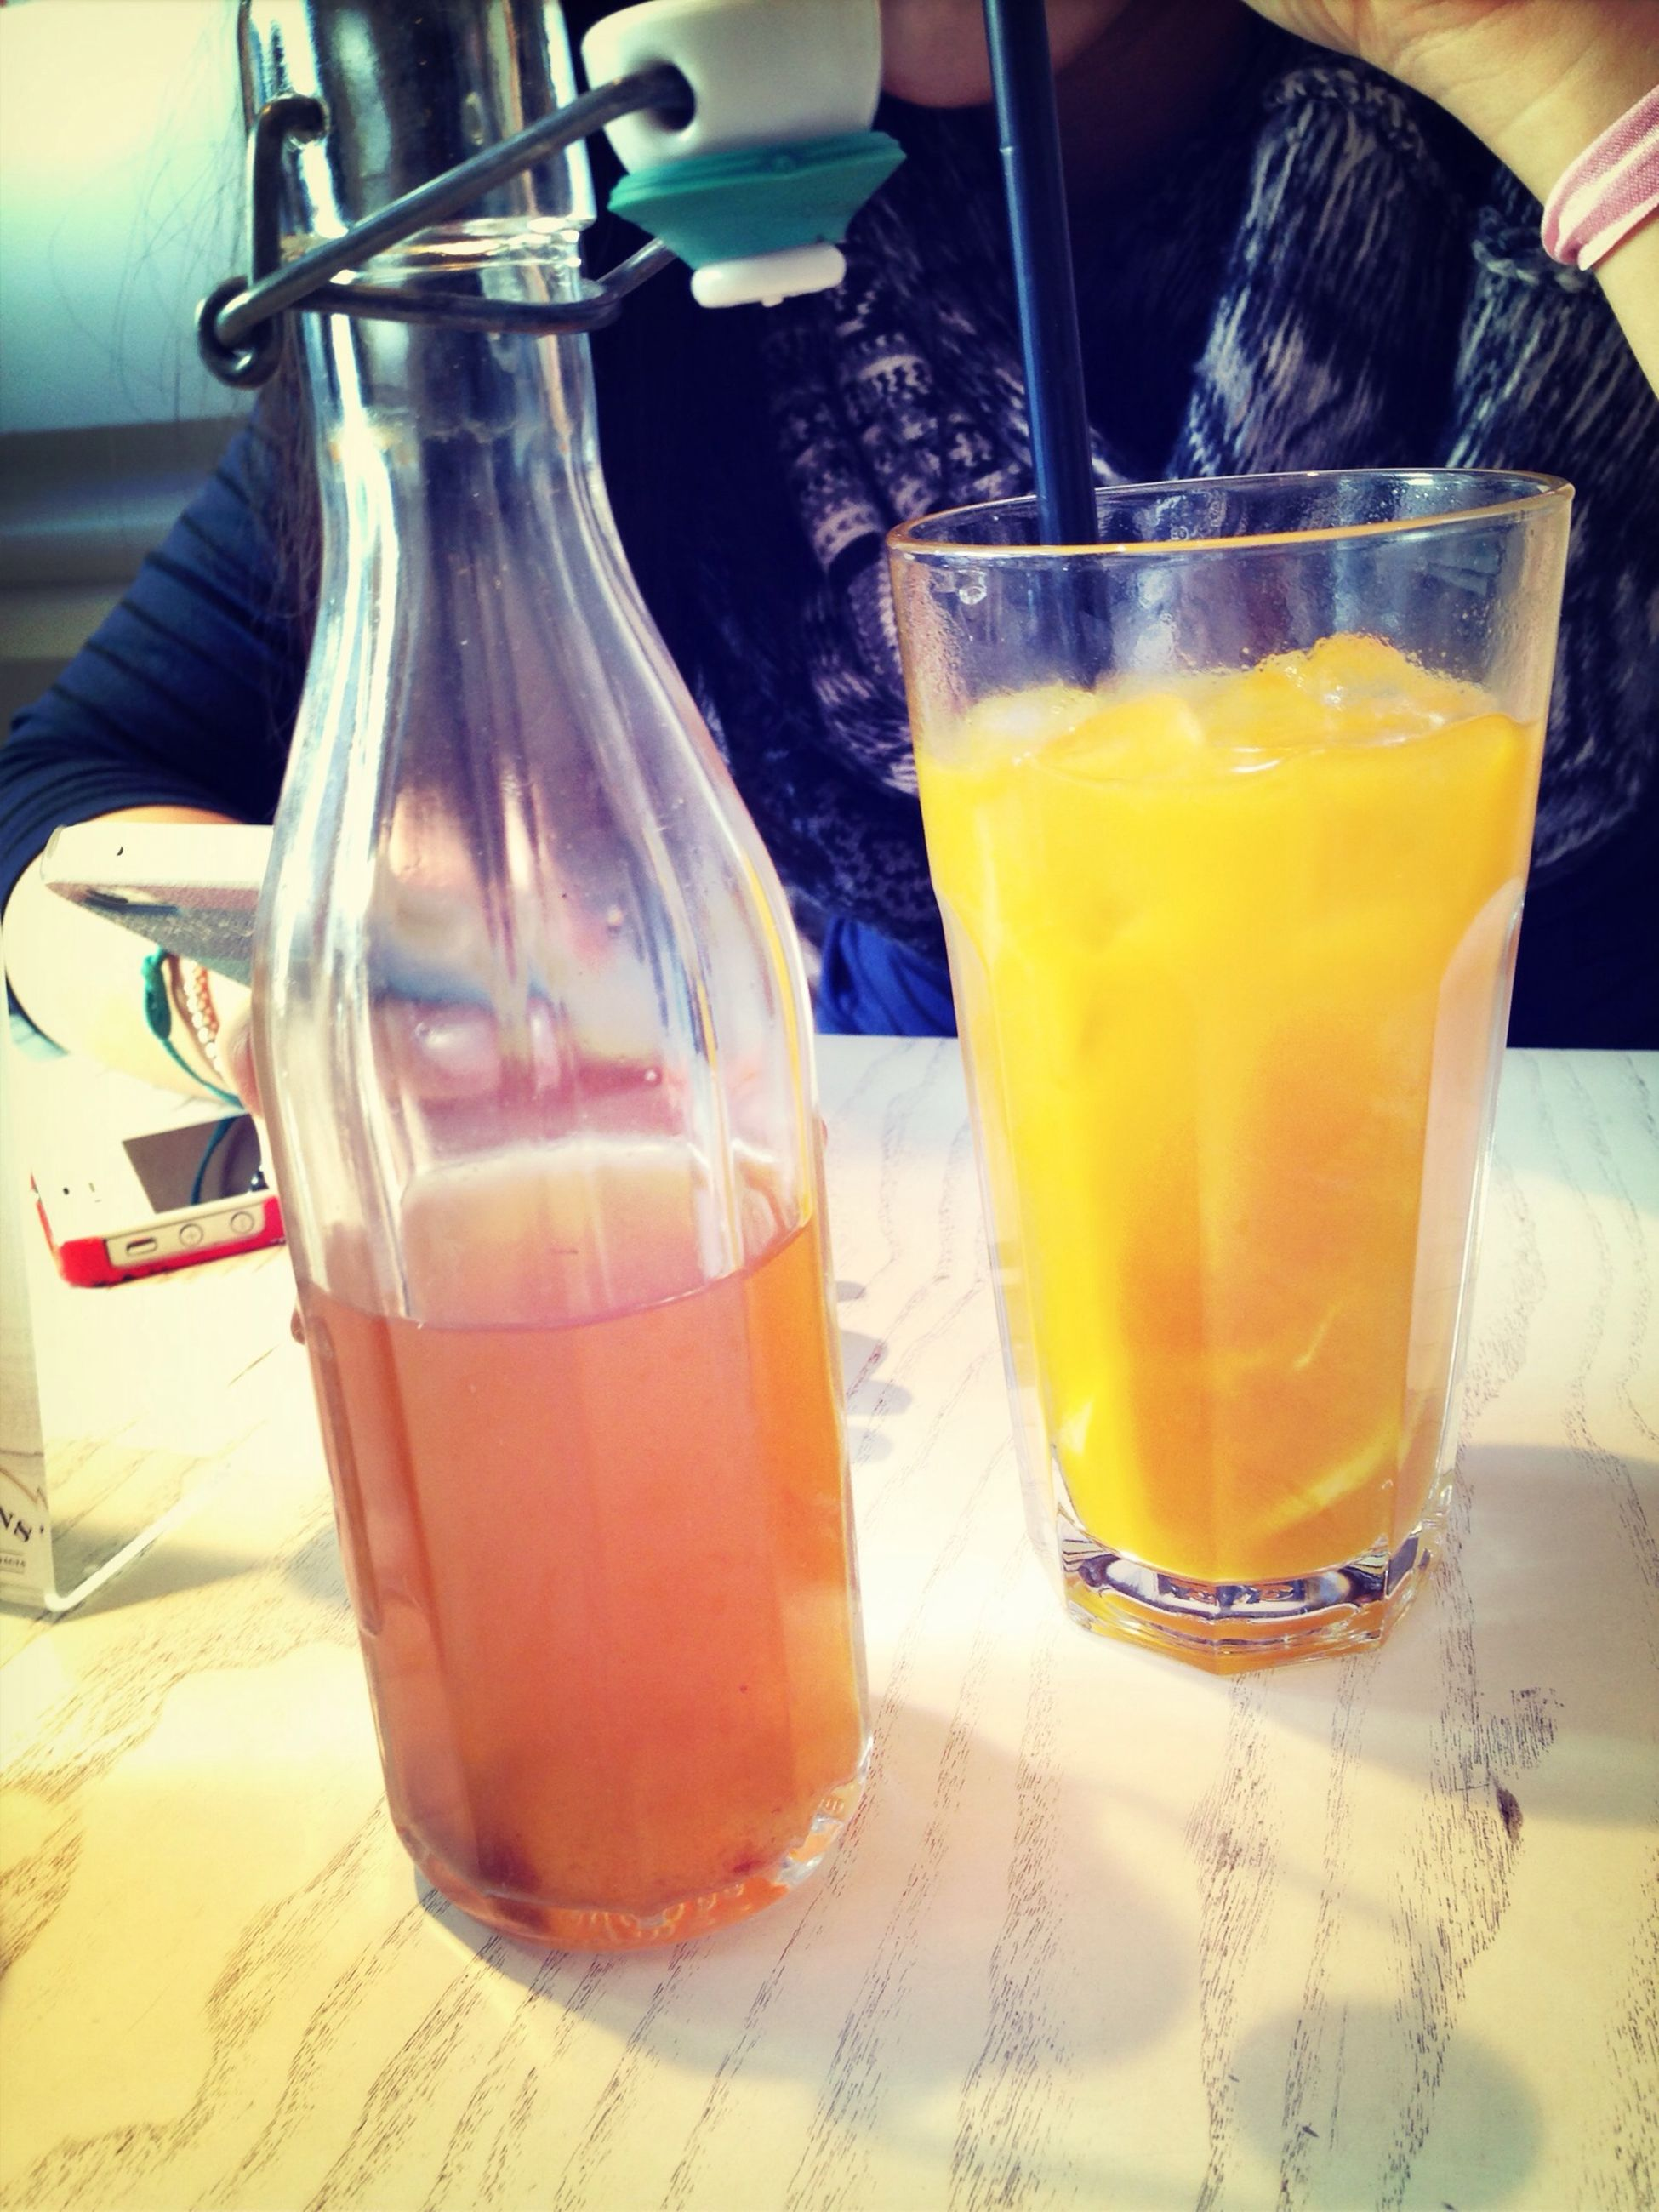 drink, food and drink, refreshment, table, drinking glass, indoors, still life, drinking straw, freshness, alcohol, juice, glass - material, close-up, glass, cocktail, restaurant, transparent, yellow, focus on foreground, no people